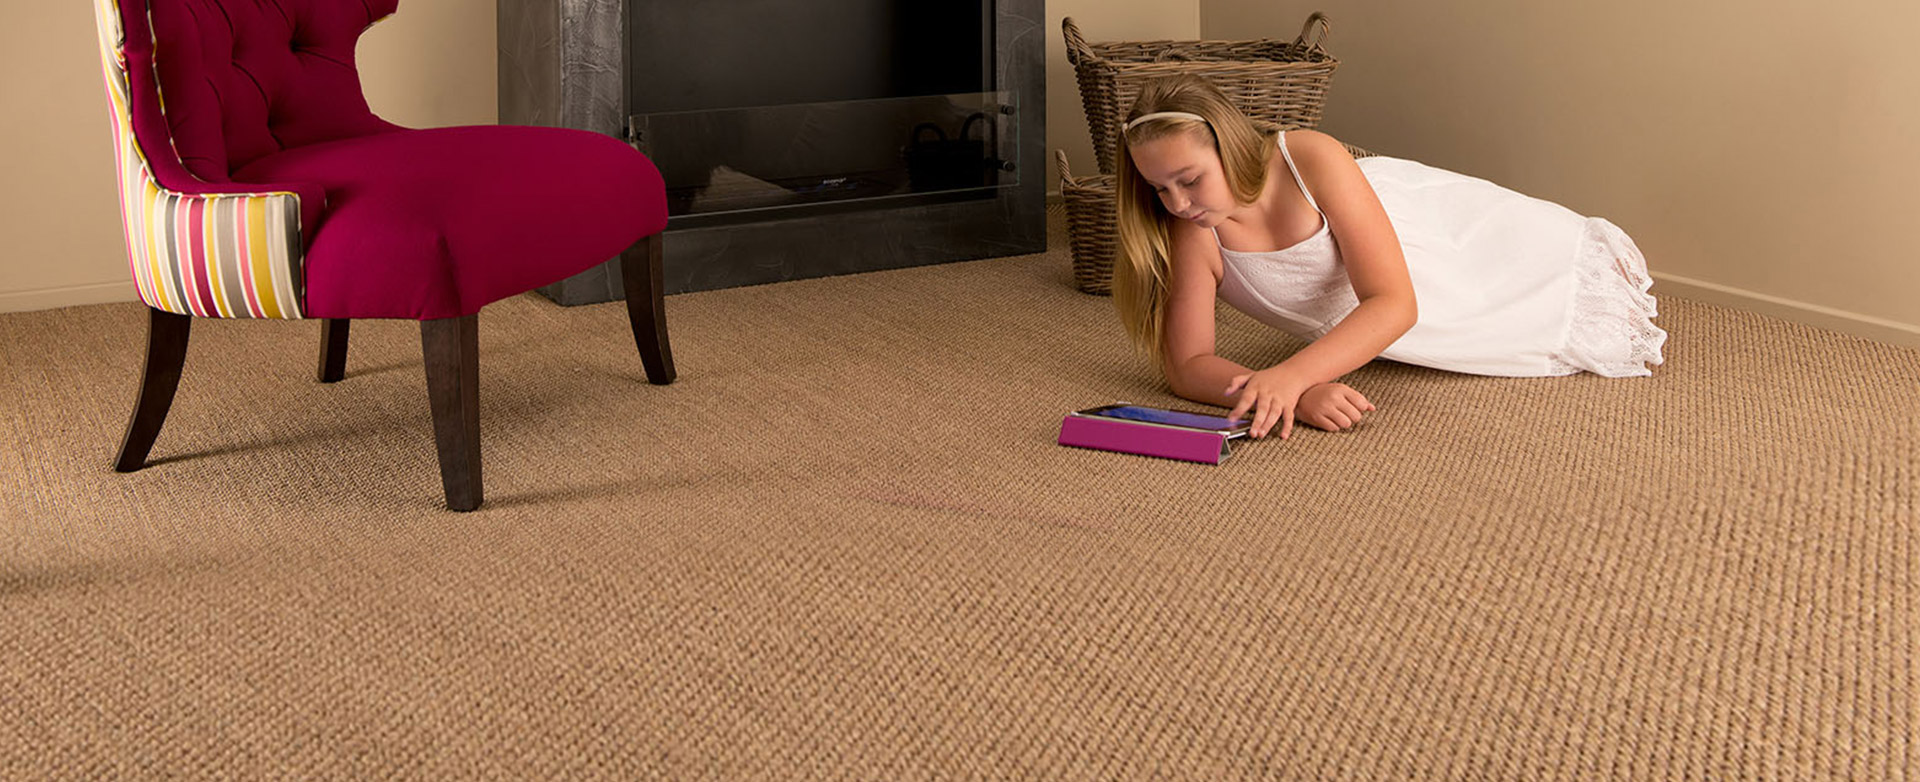 interfloors-girl-carpet